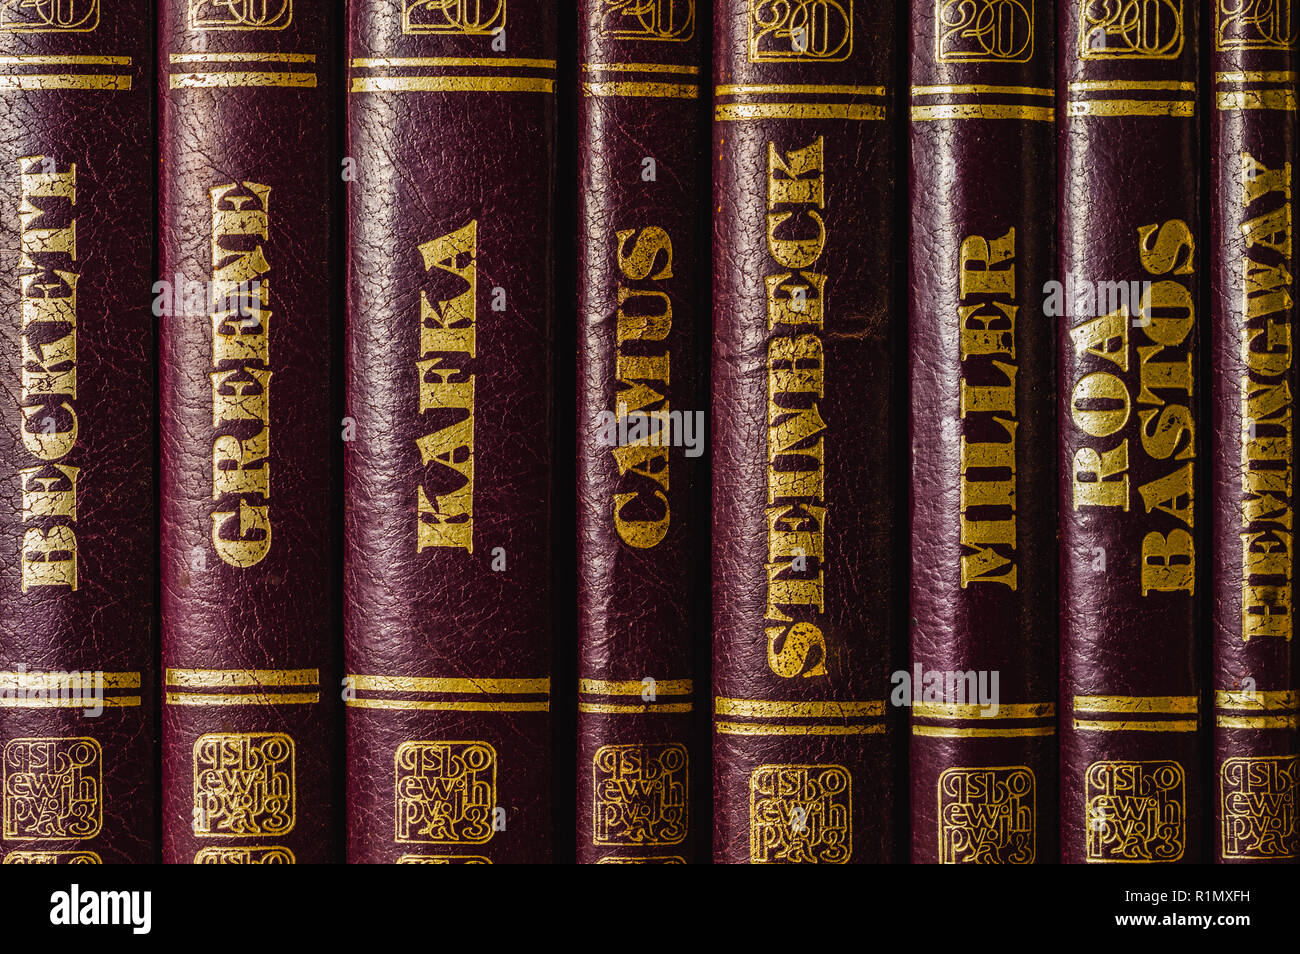 Classic writers' books of the 20th century, room for text - Stock Image